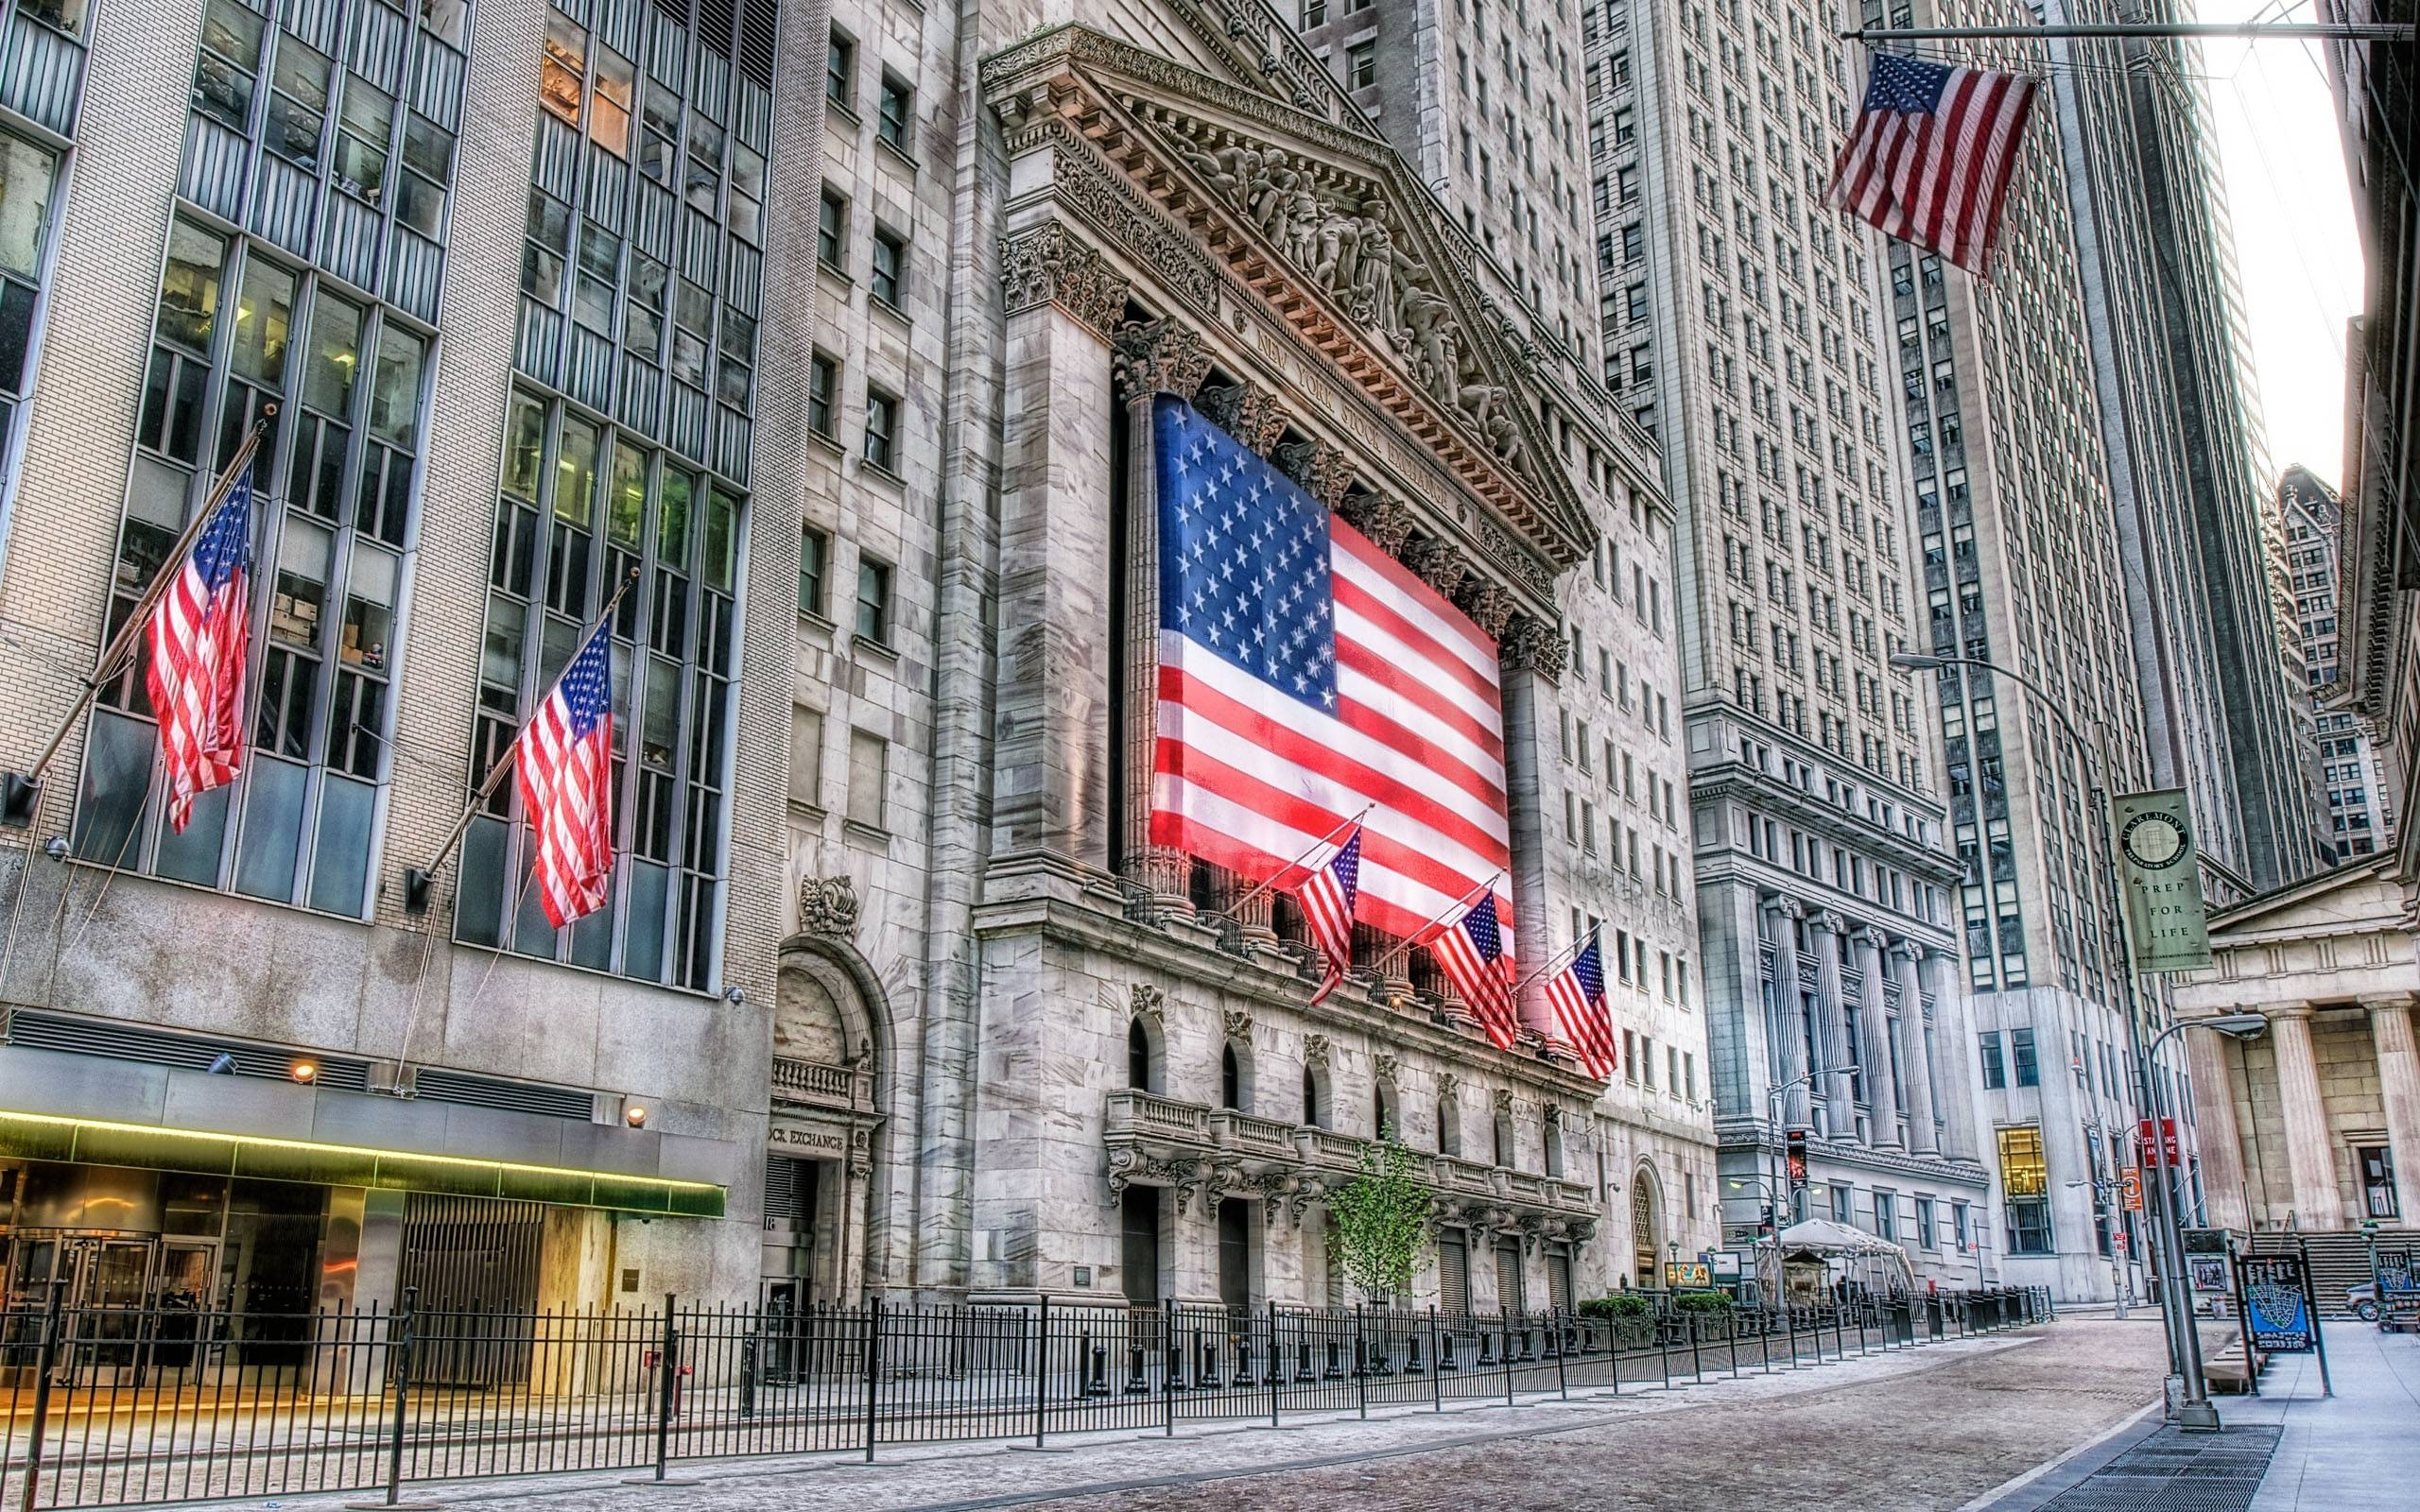 10 Top Wall Street Stock Market Wallpaper FULL HD 1920×1080 For PC Desktop